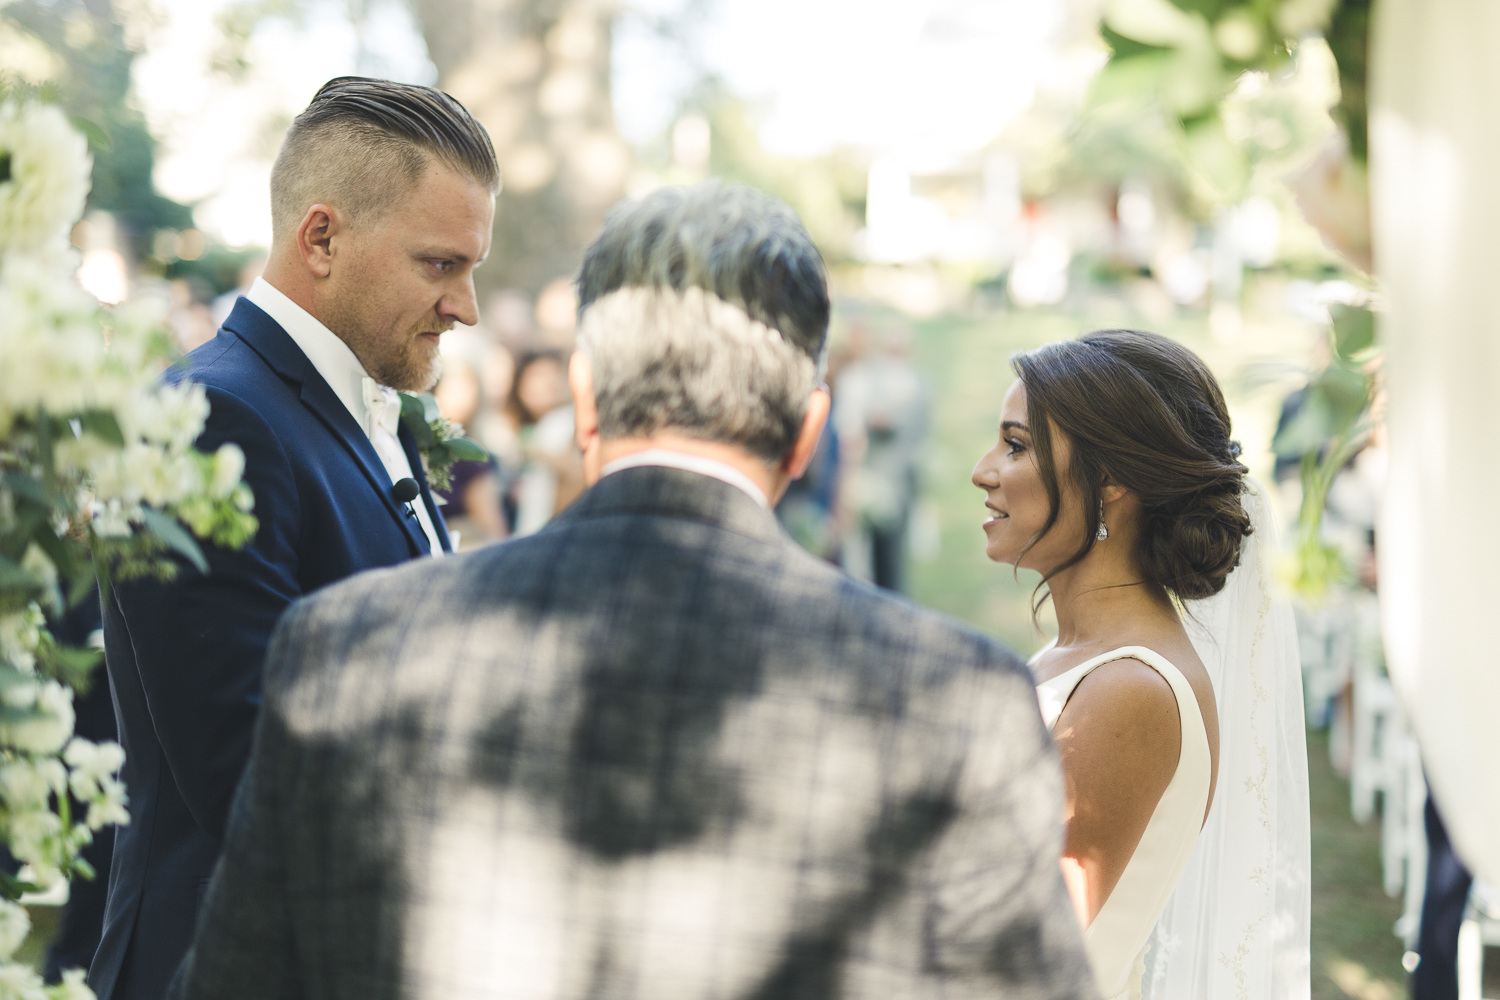 Bride and Groom at alter - Riverdale Manor